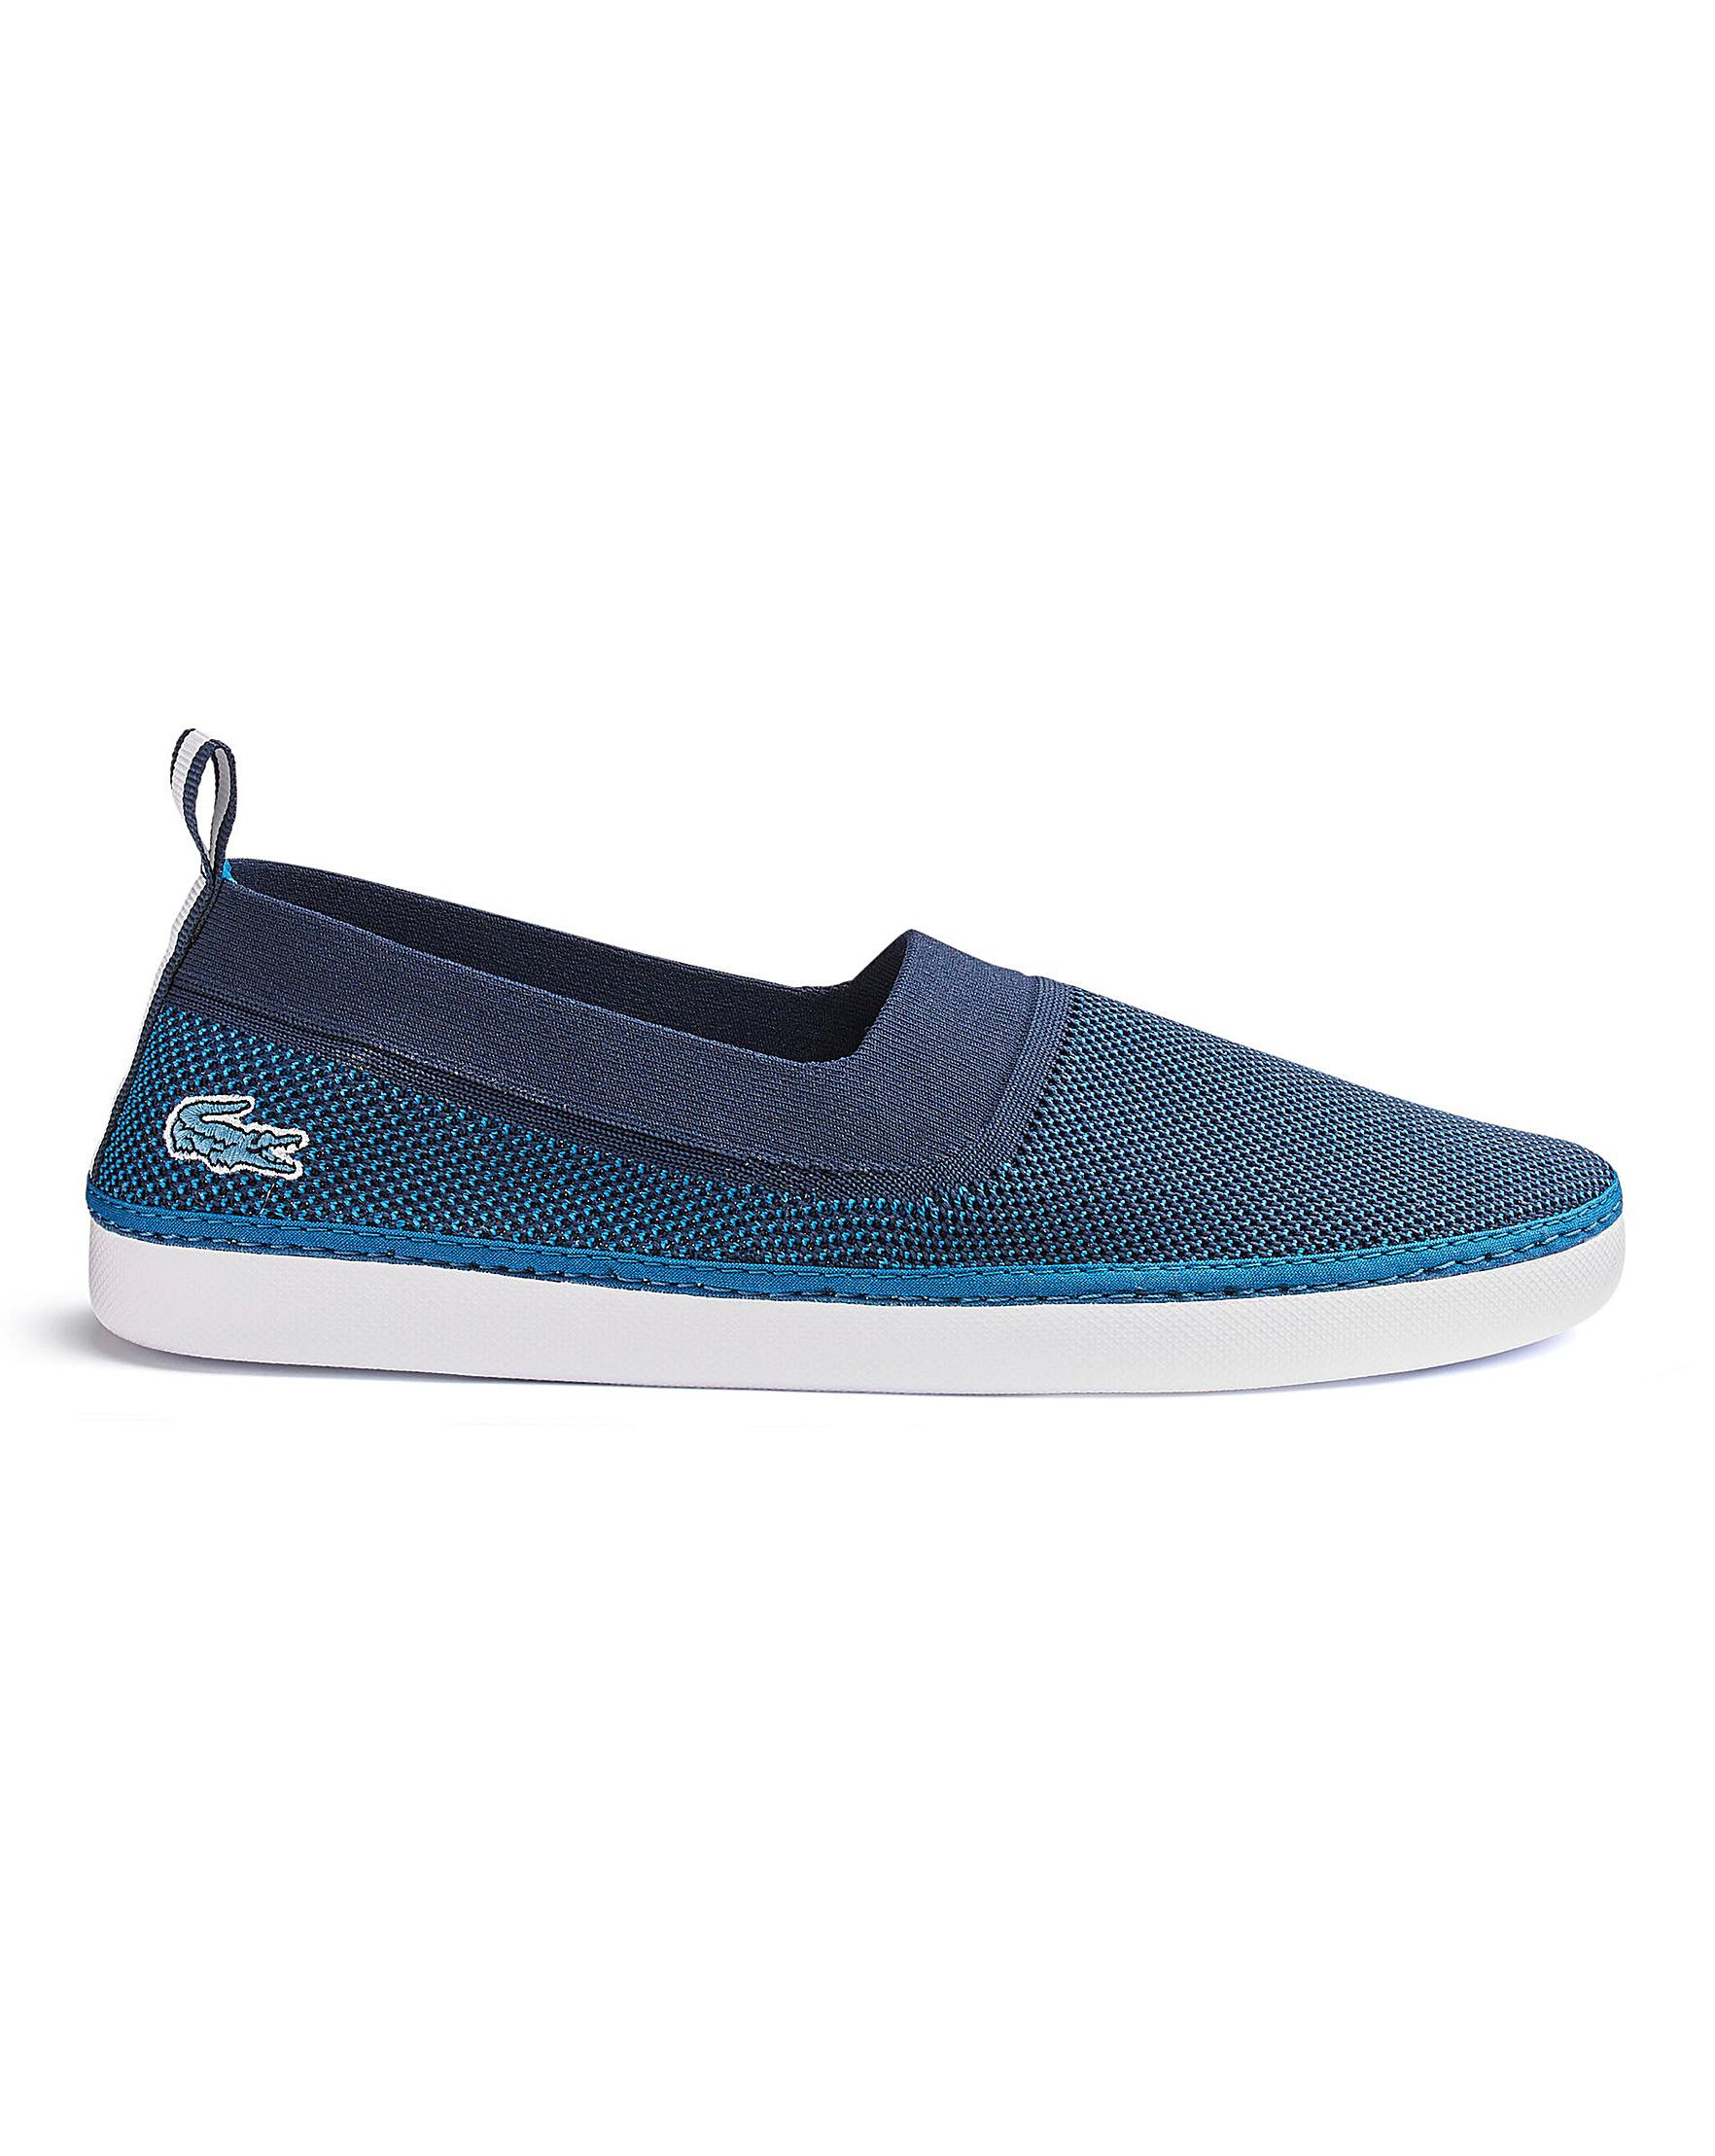 Lydro Trainers In Blue - Blue Lacoste LwSr5MQC